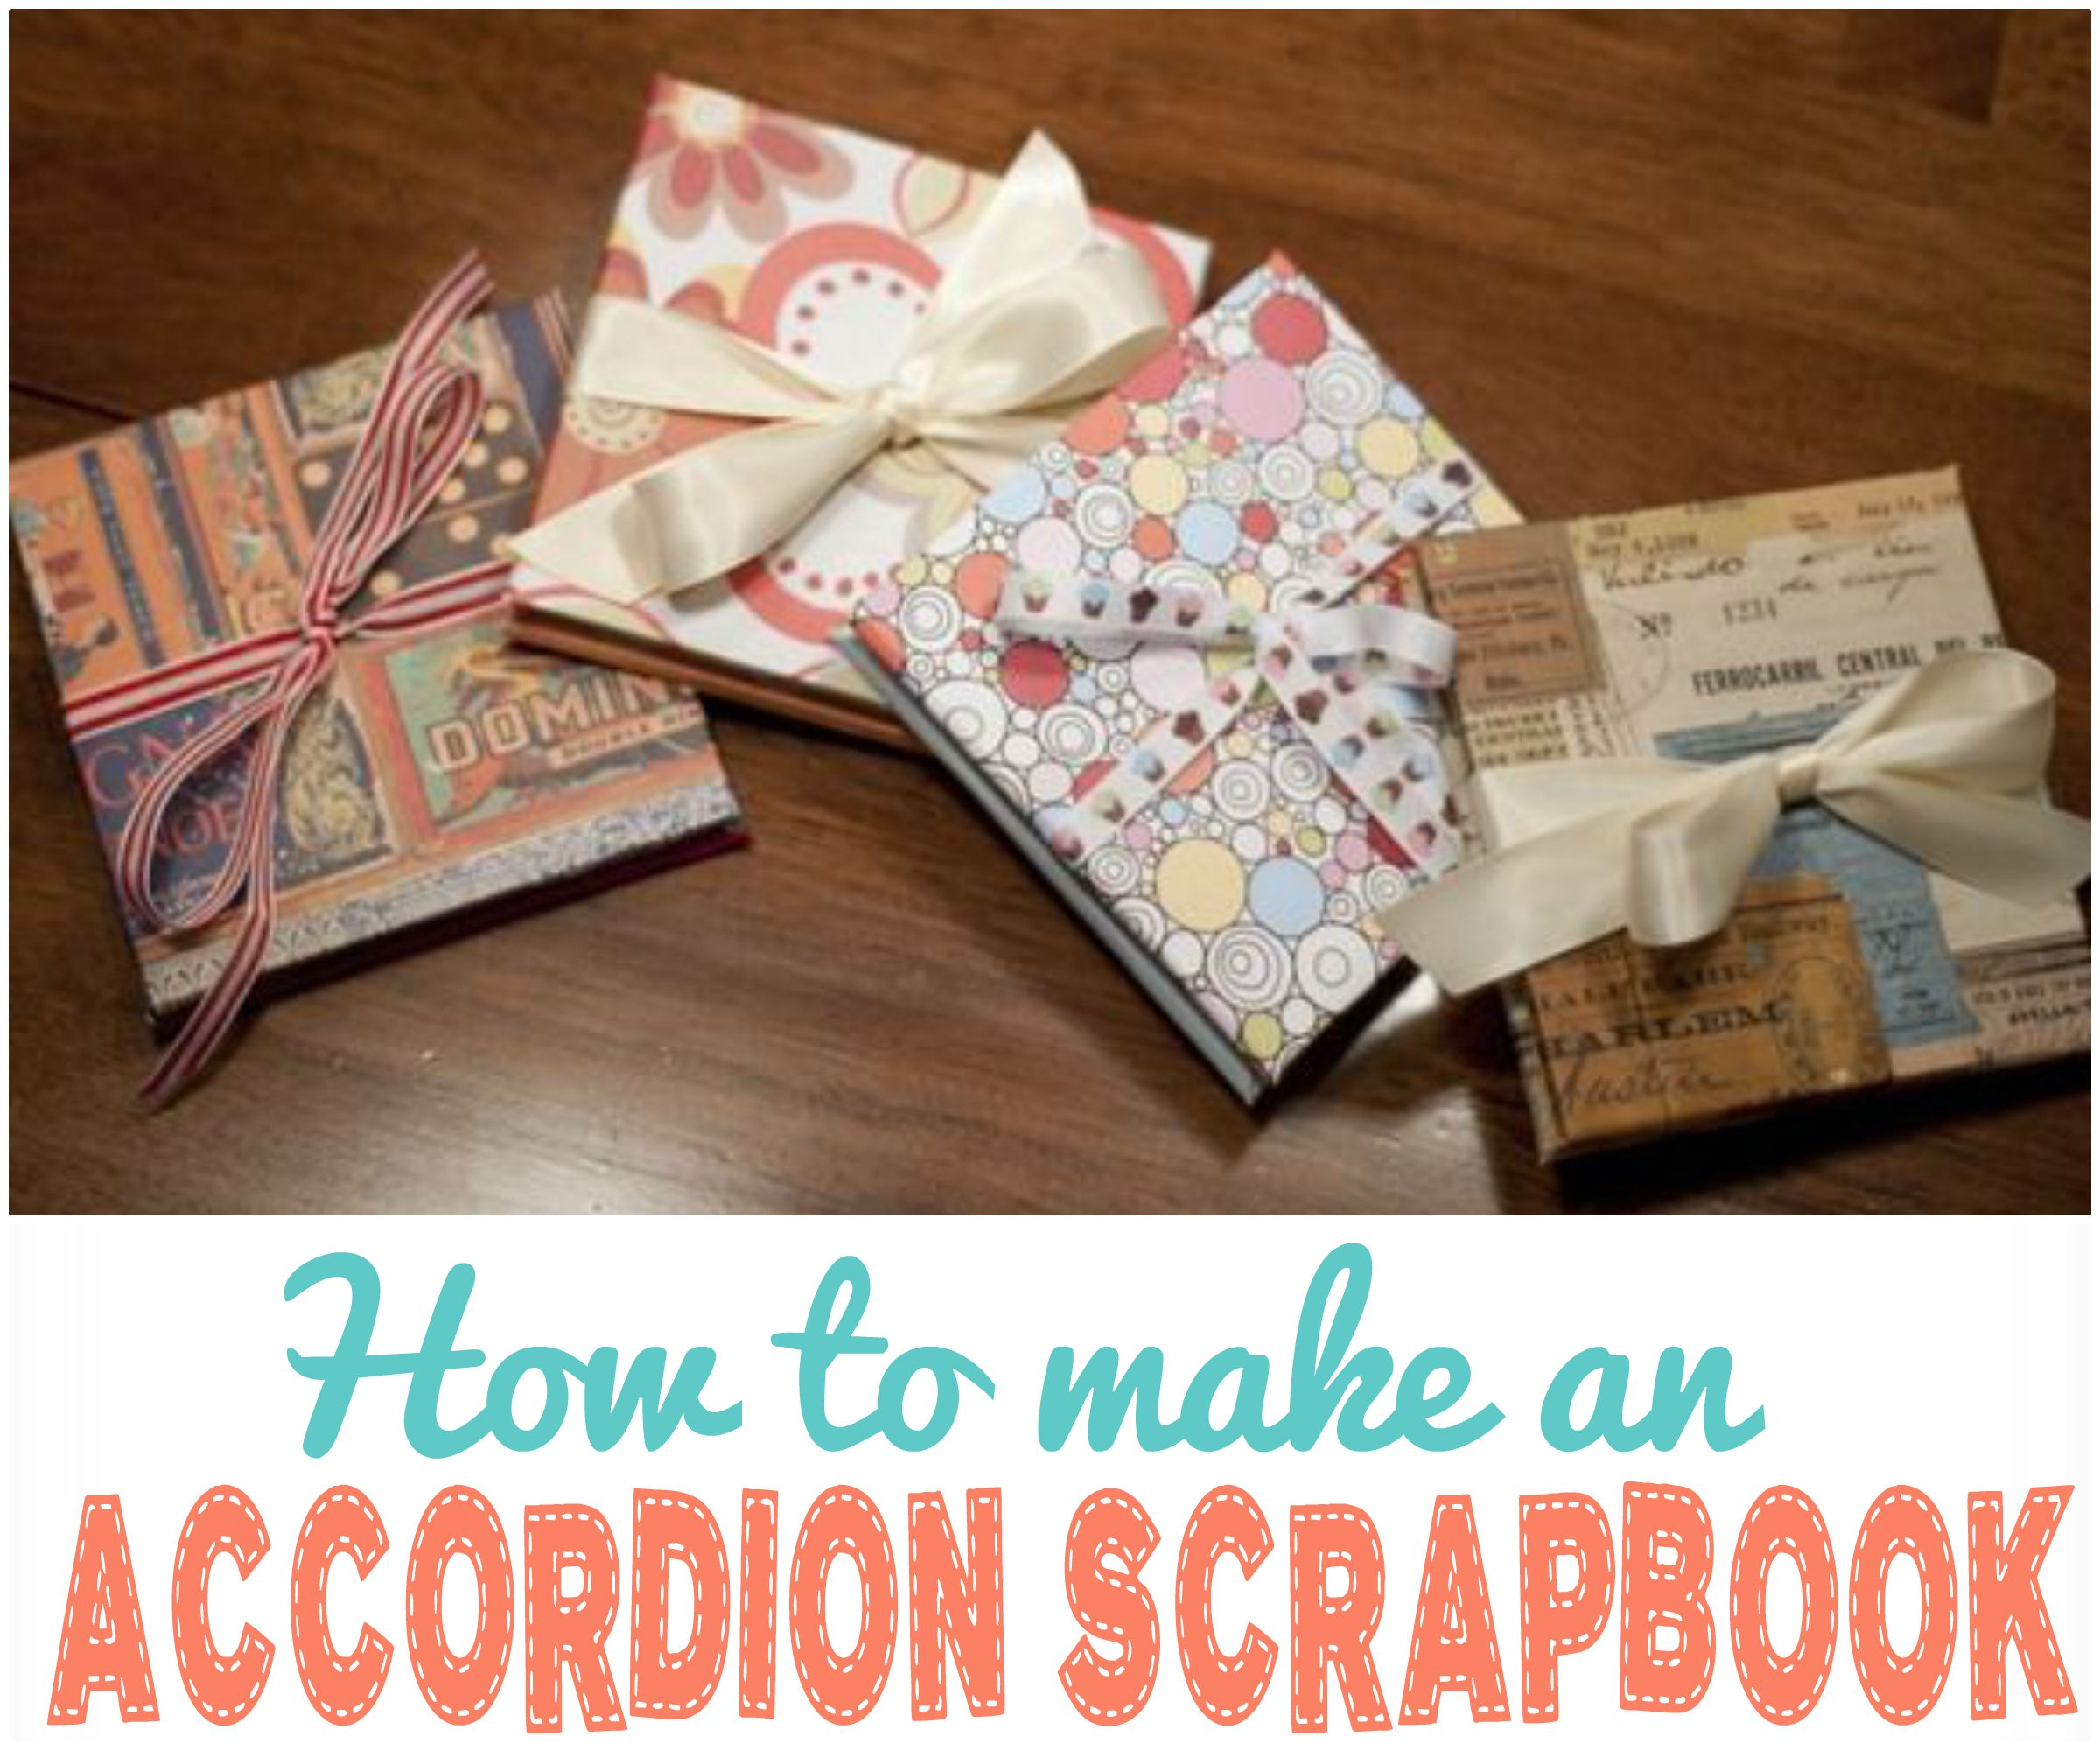 How to make scrapbook simple - Paper Crafting Simple Accordion Scrapbook Tutorial These Make Awesome Gifts For Any Occasion